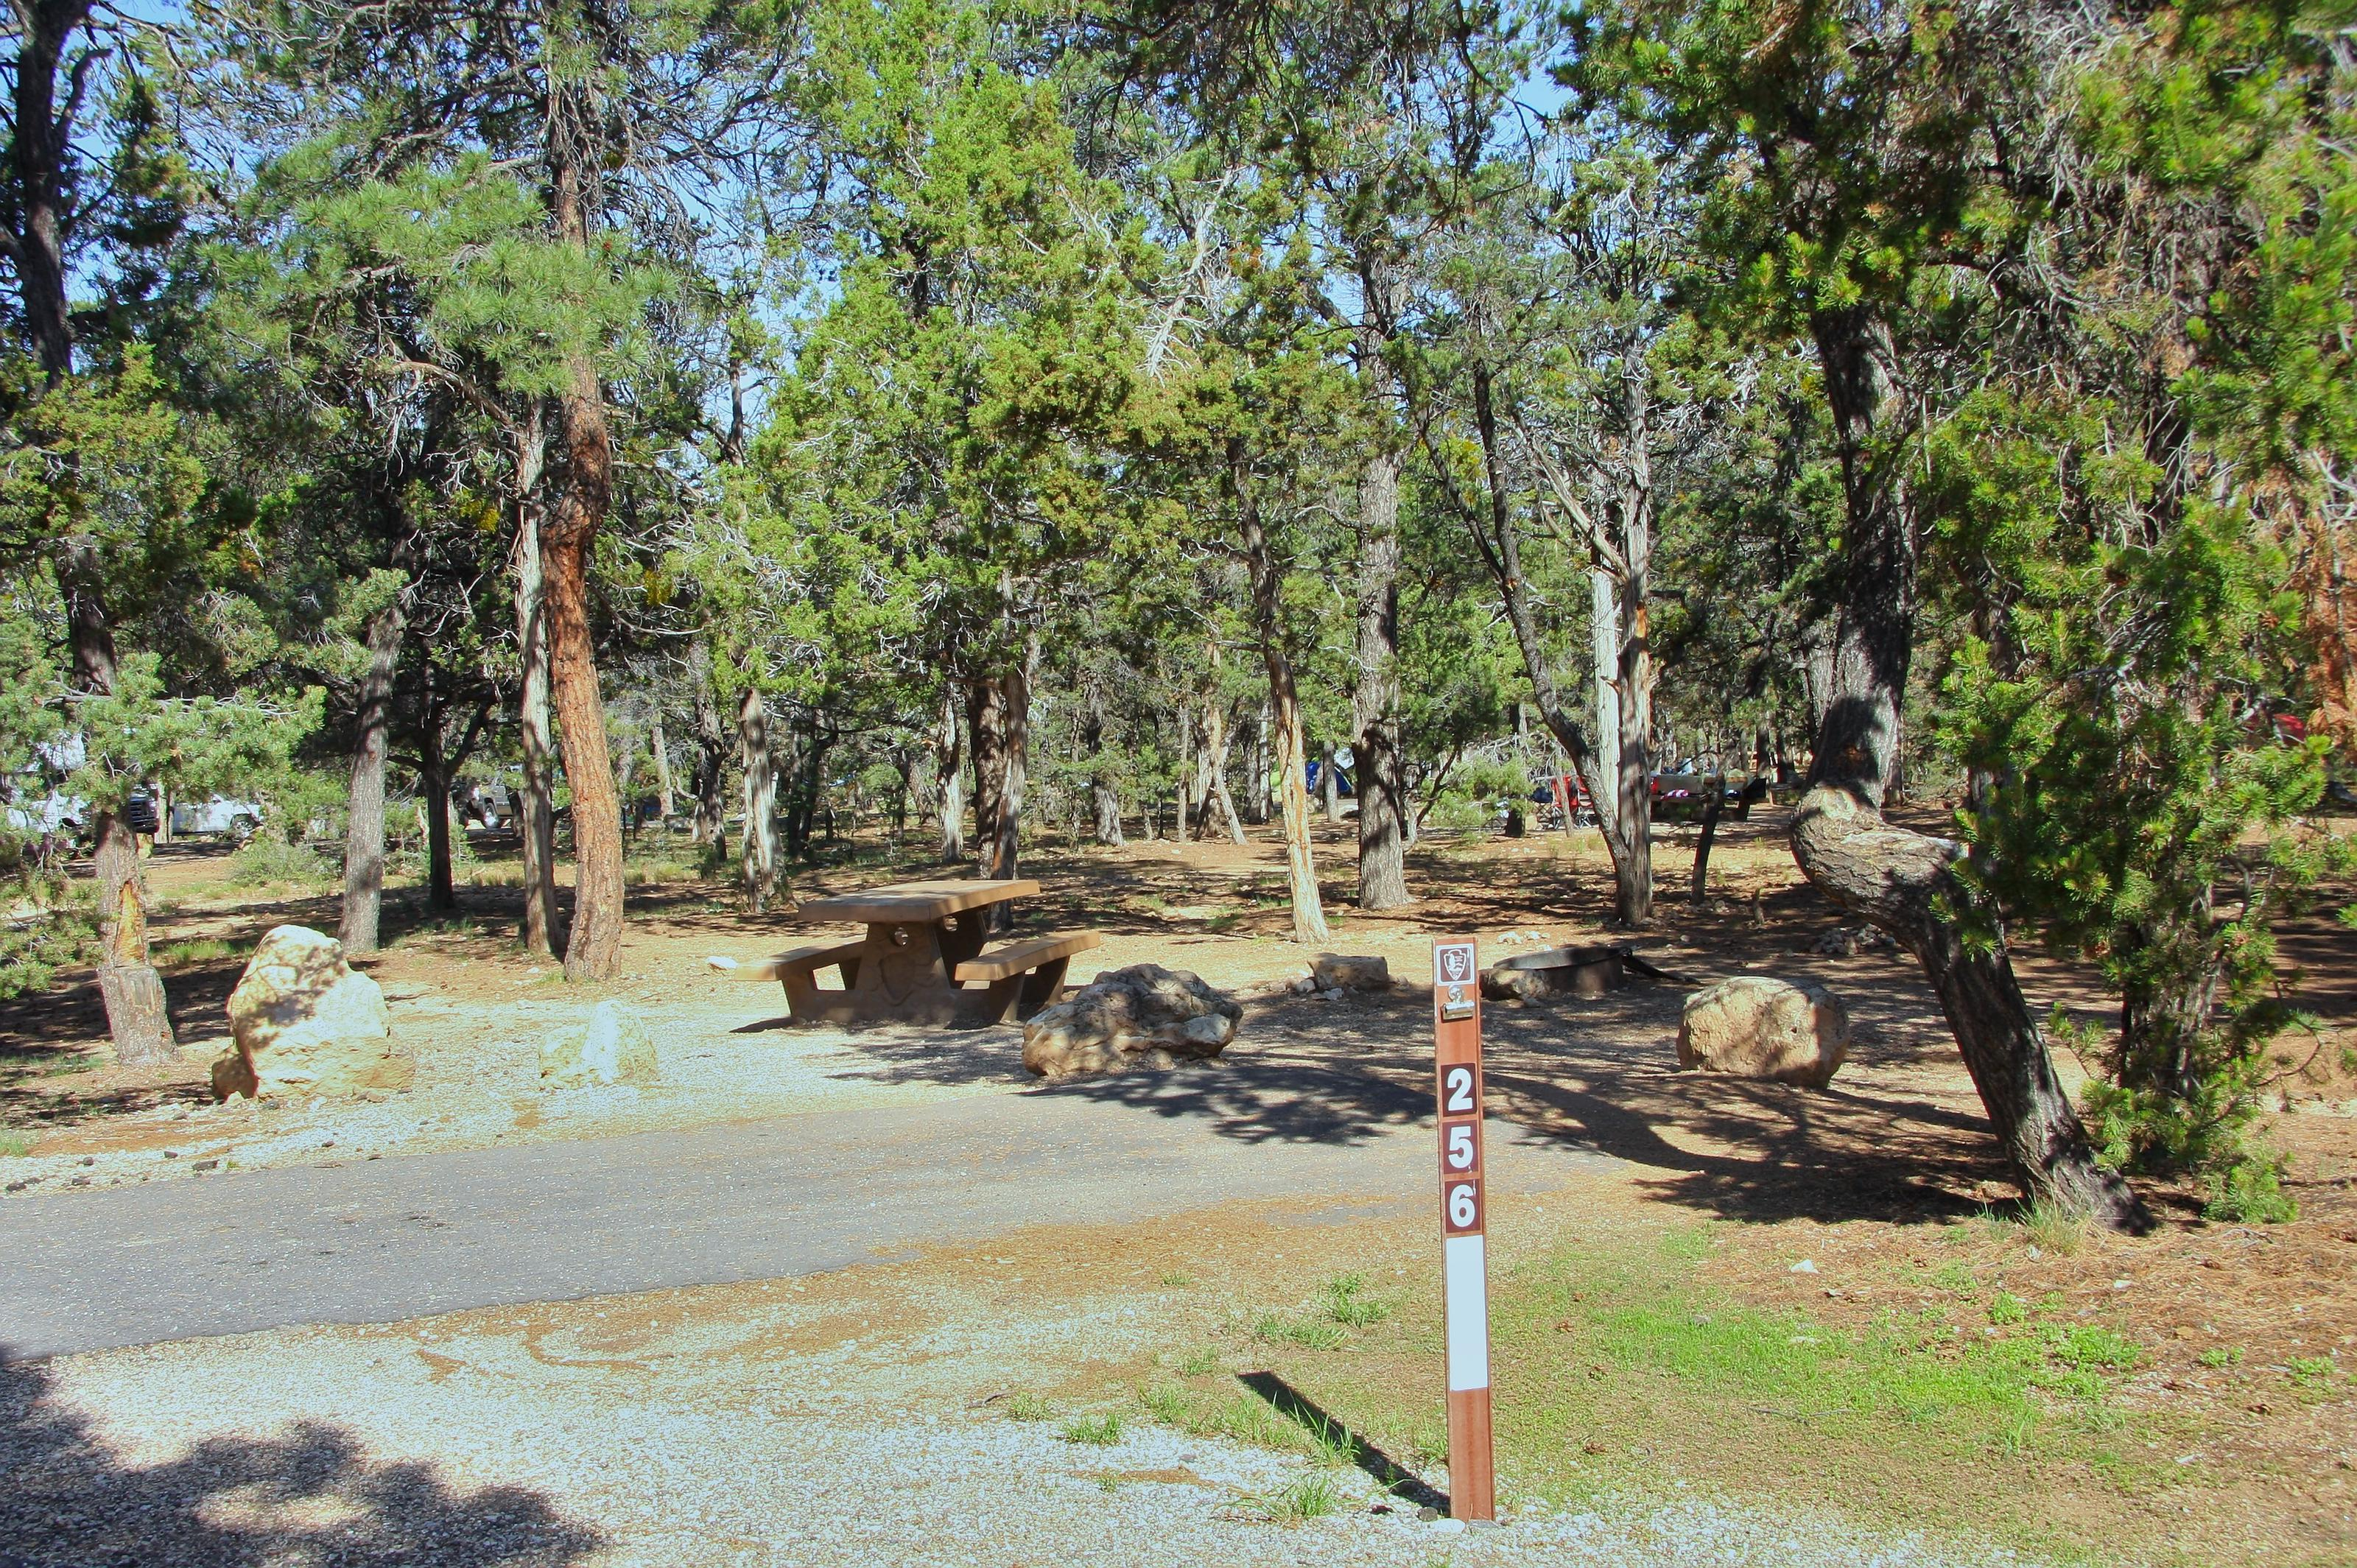 Picnic table, fire pit, and park spot, Mather CampgroundPicnic table, fire pit, and park spot for Oak Loop 256, Mather Campground